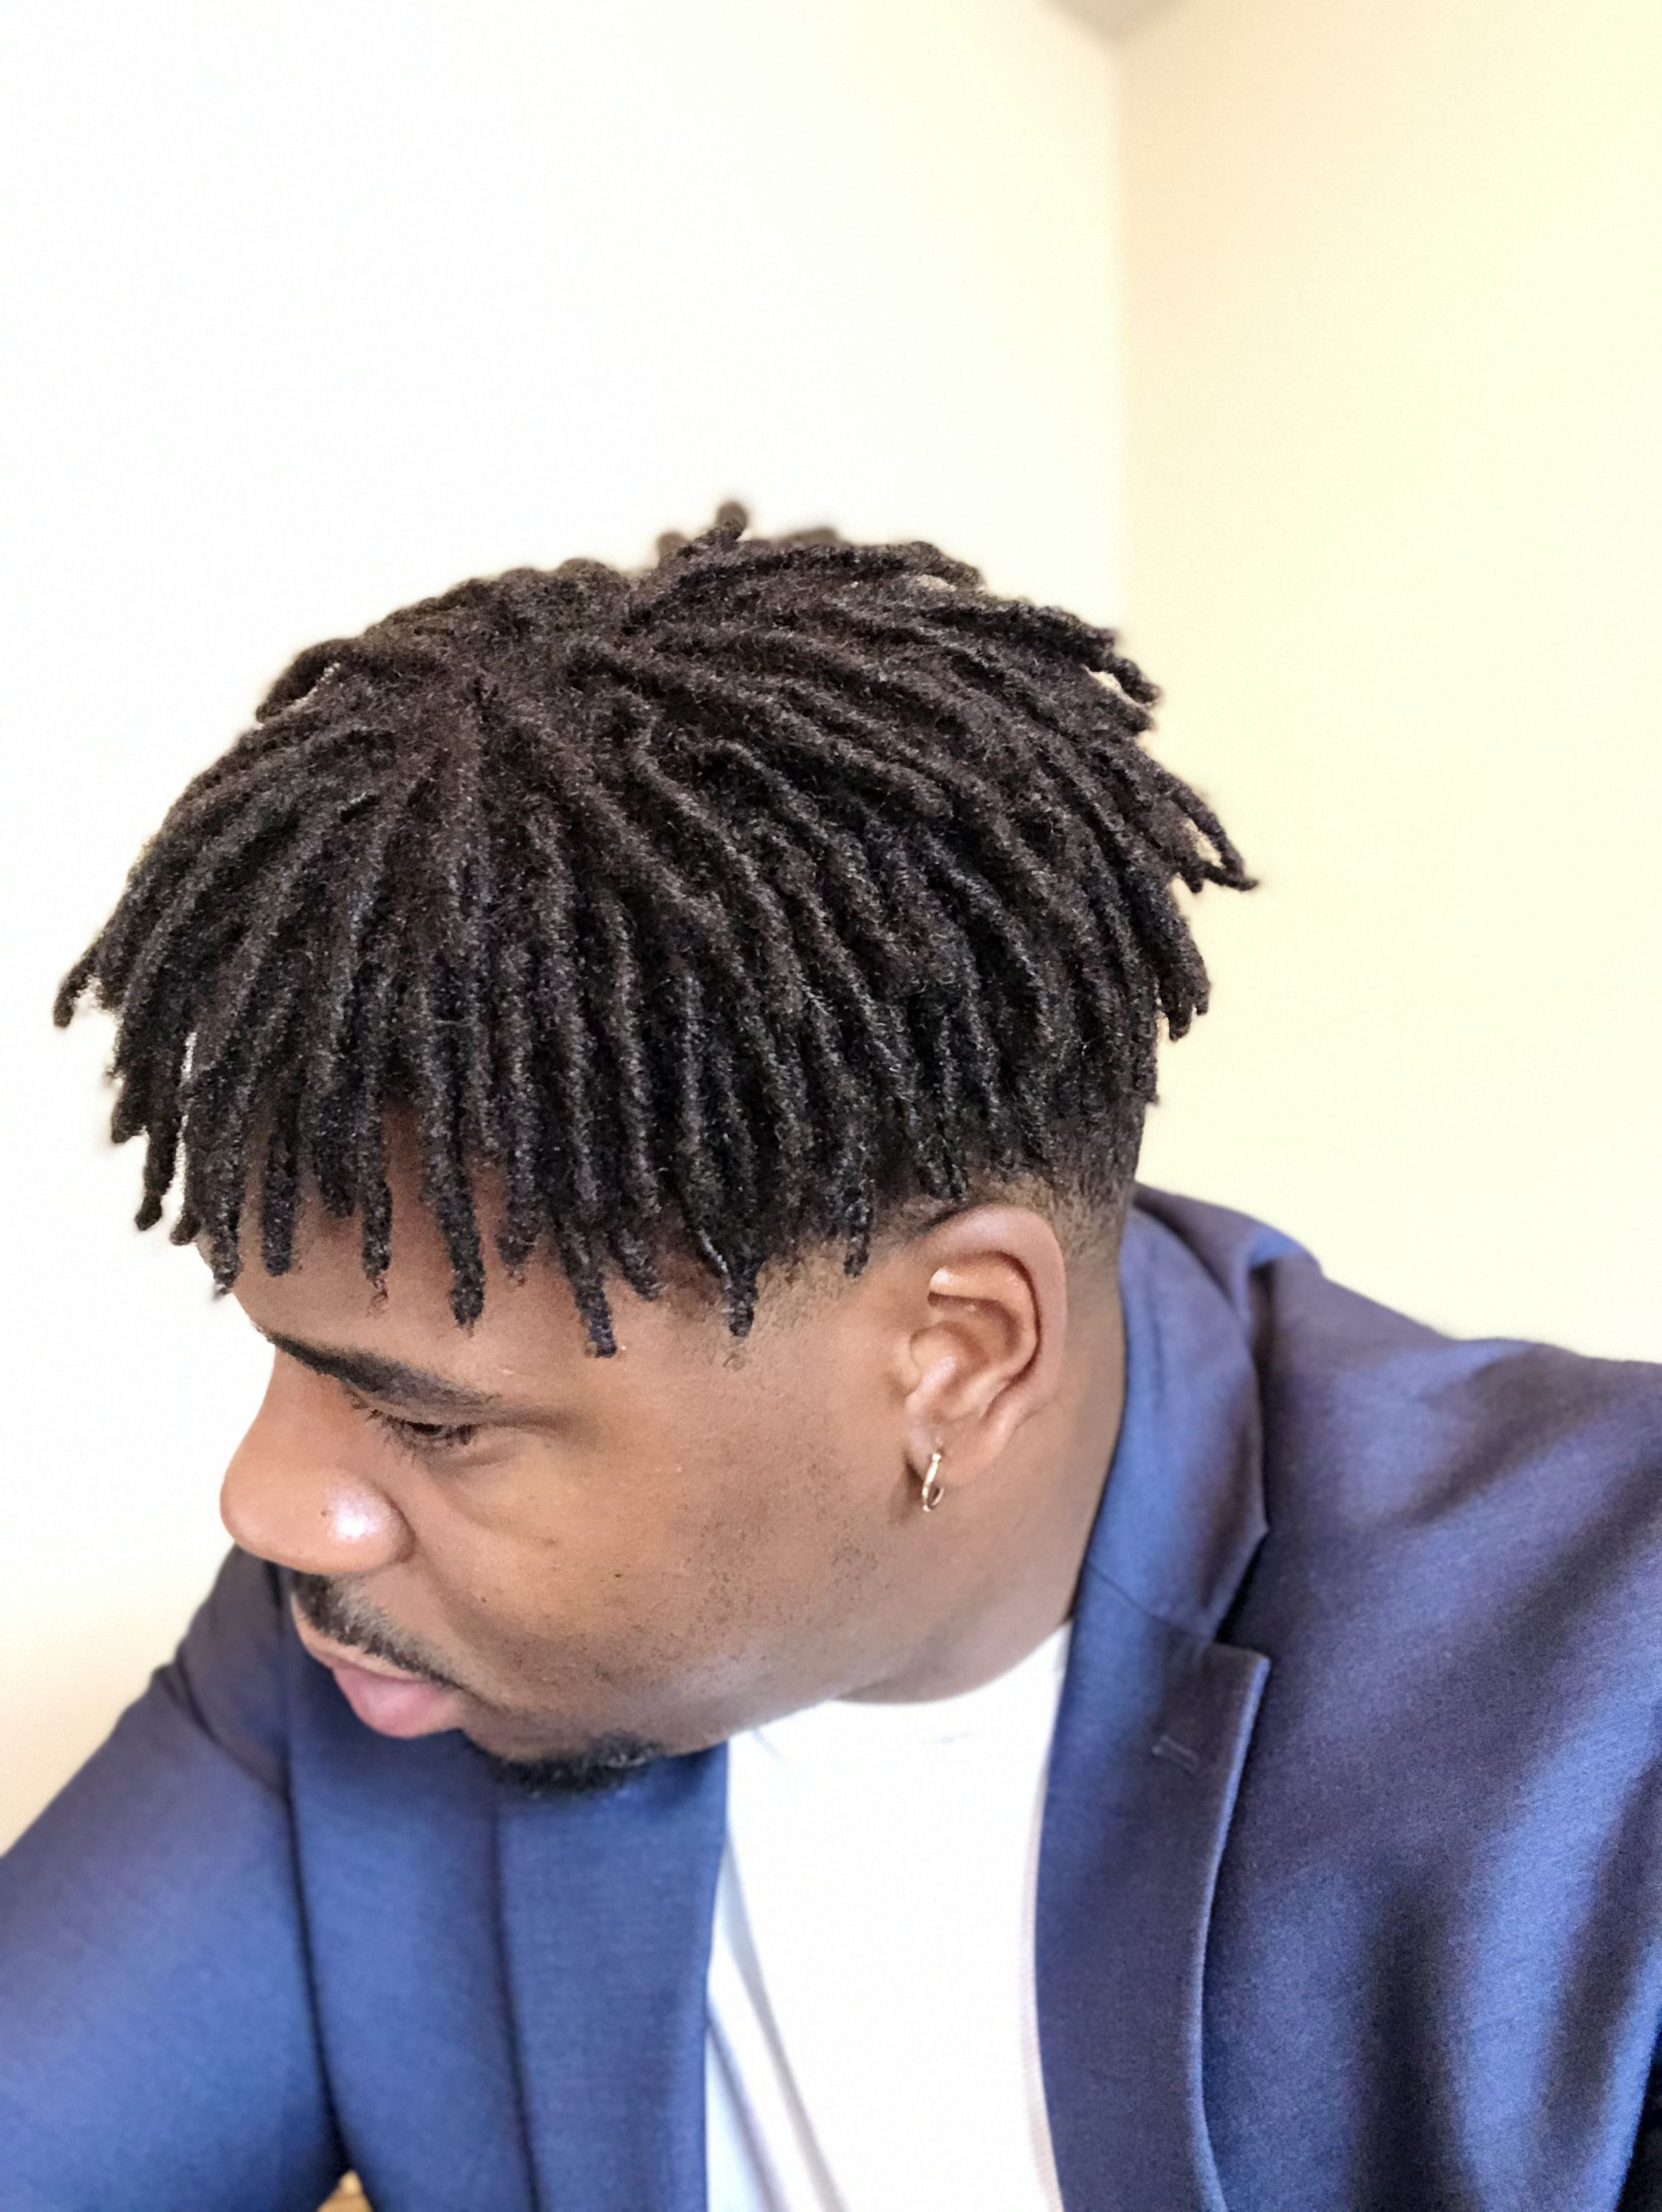 Short Twists Male : short, twists, @deop_locd, #hightopdreads, #locs, #locstylesformen, #dreads, #dreadlocks, #toplocs, #dreadl…, Twists, Black,, Dreadlock, Hairstyles, Short, Twist, Styles